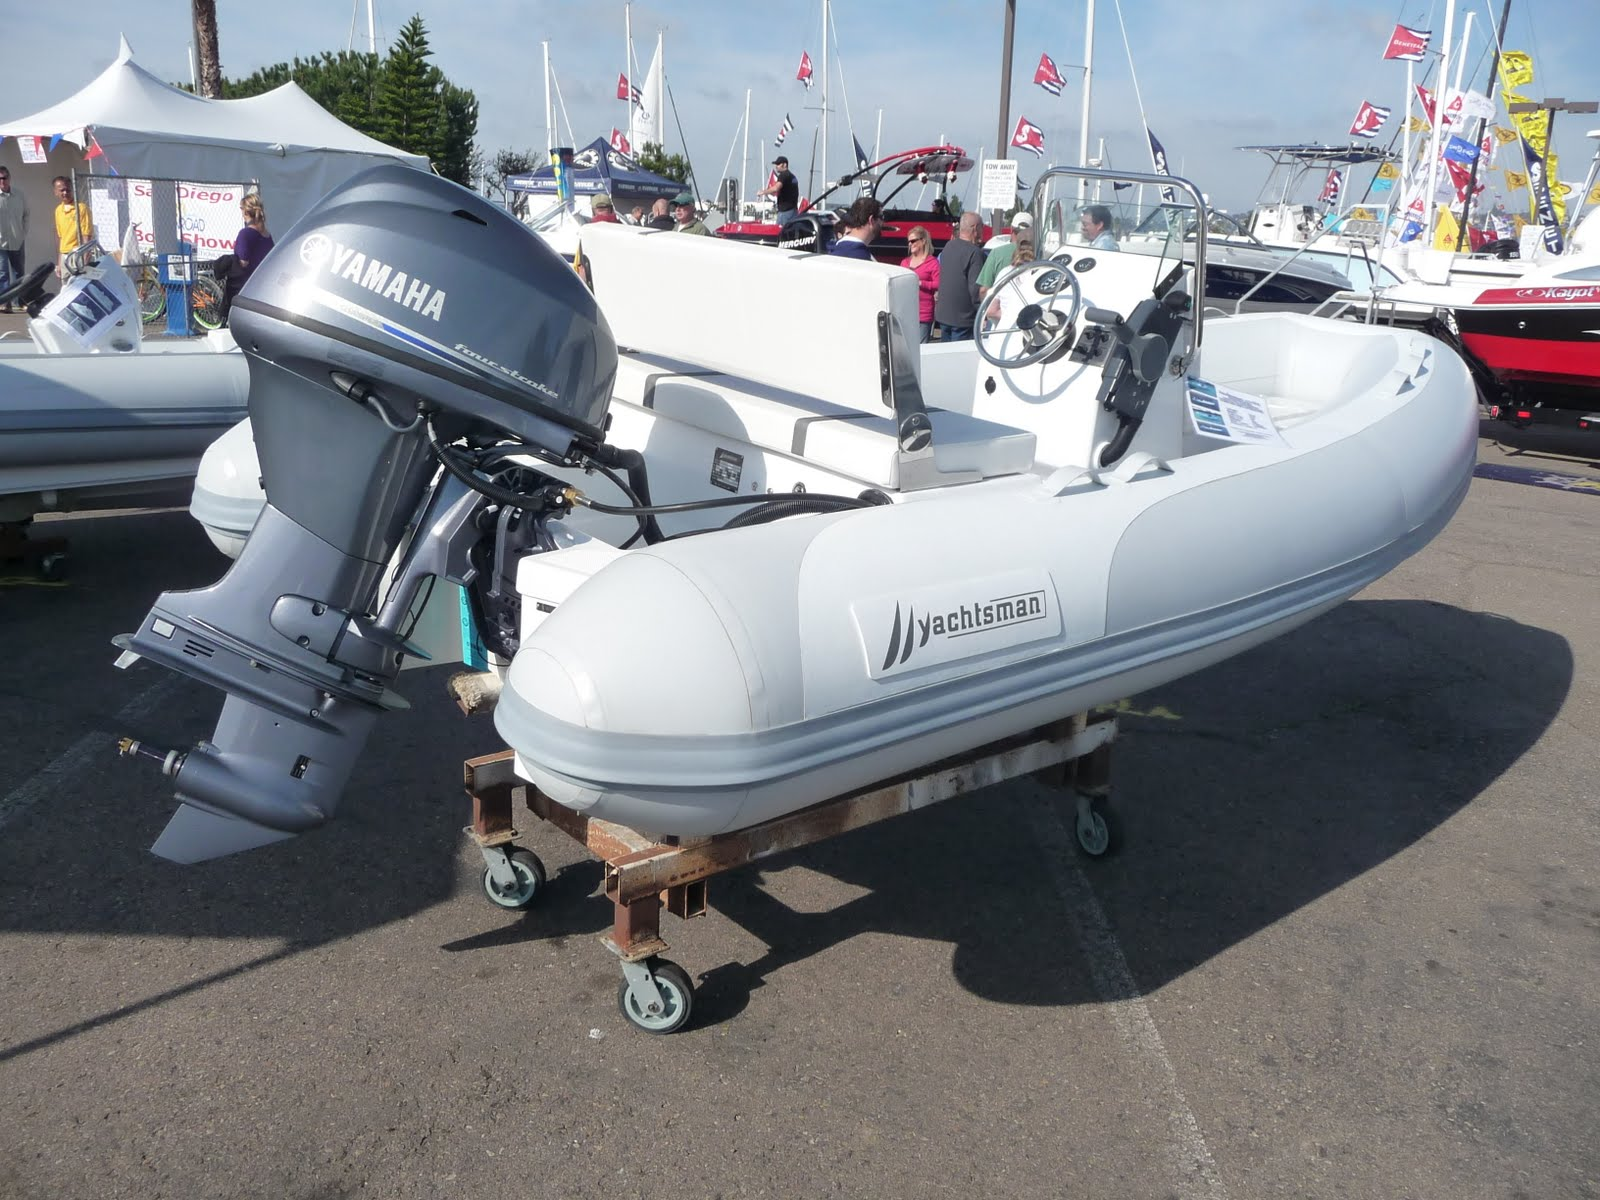 Tradewind inflatables sales service events specials for Yamaha outboard service san diego